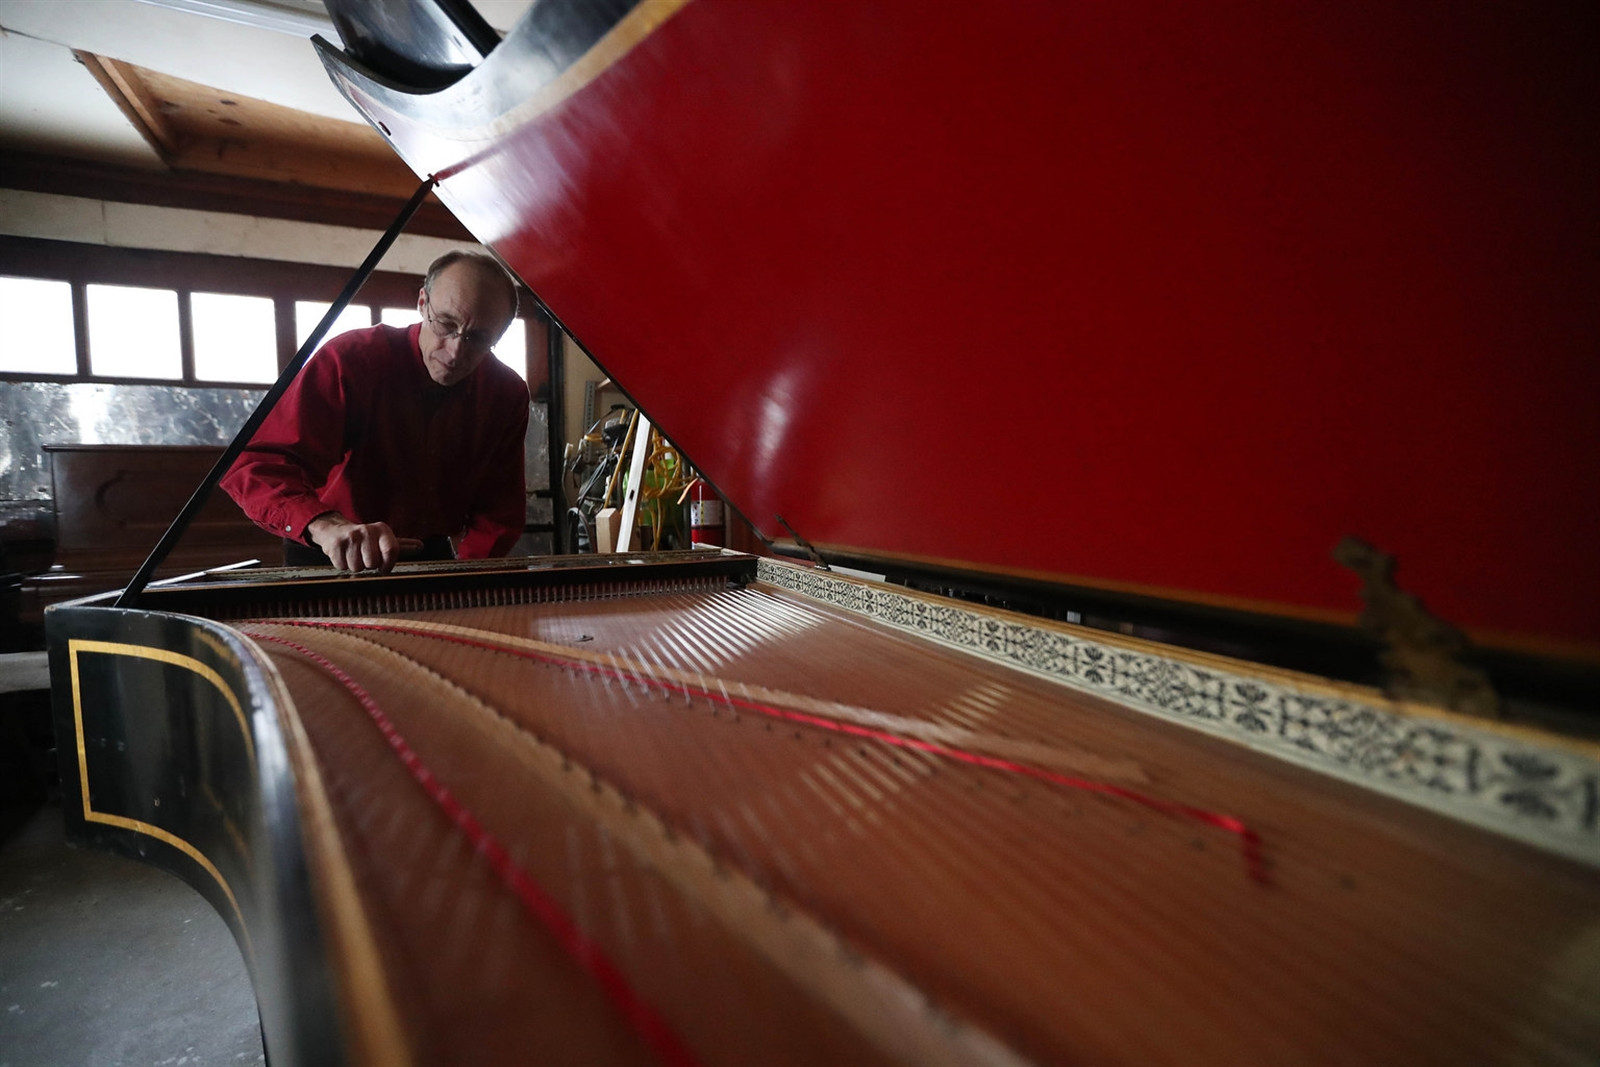 Bob Sowyrda, who rebuilt this harpsichord, tunes the instrument. Every time the Buffalo Chamber Players needed a harpsichord, they had to rent one, and purchasing one was too expensive.